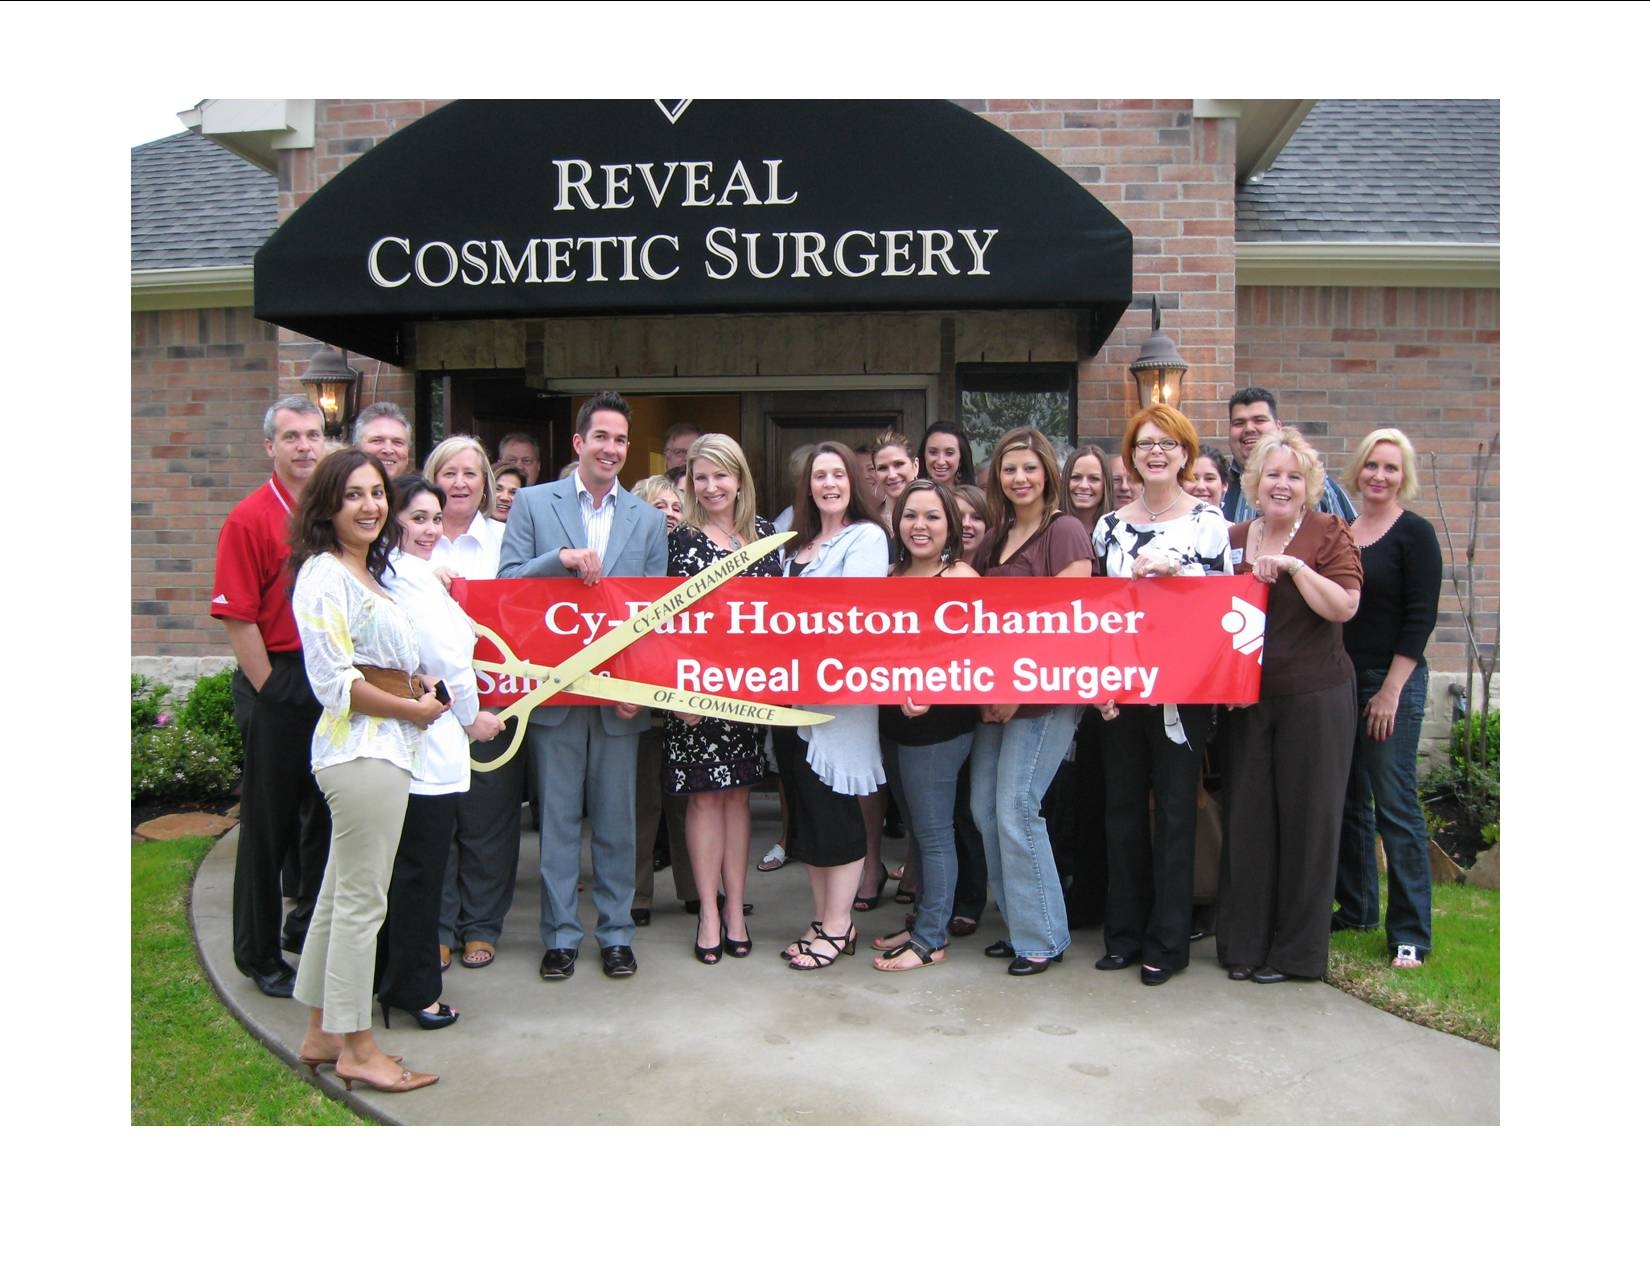 Reveal Cosmetic Surgery